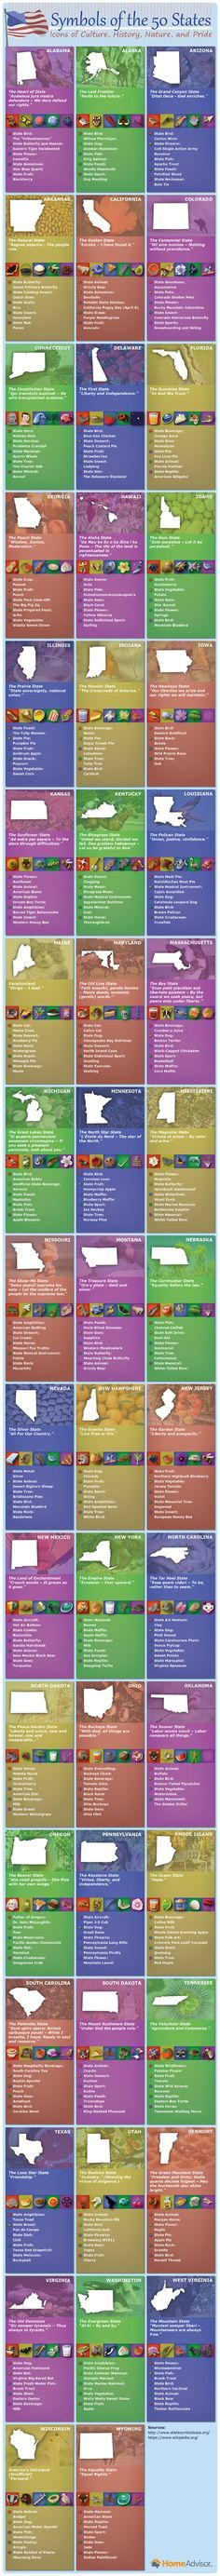 Symbols of the Fifty States: Icons of Culture, History, Nature, and Pride History Timeline, History Memes, History Photos, History Lessons For Kids, History Projects, Black History Quotes, Black History Facts, World History Book, History Books